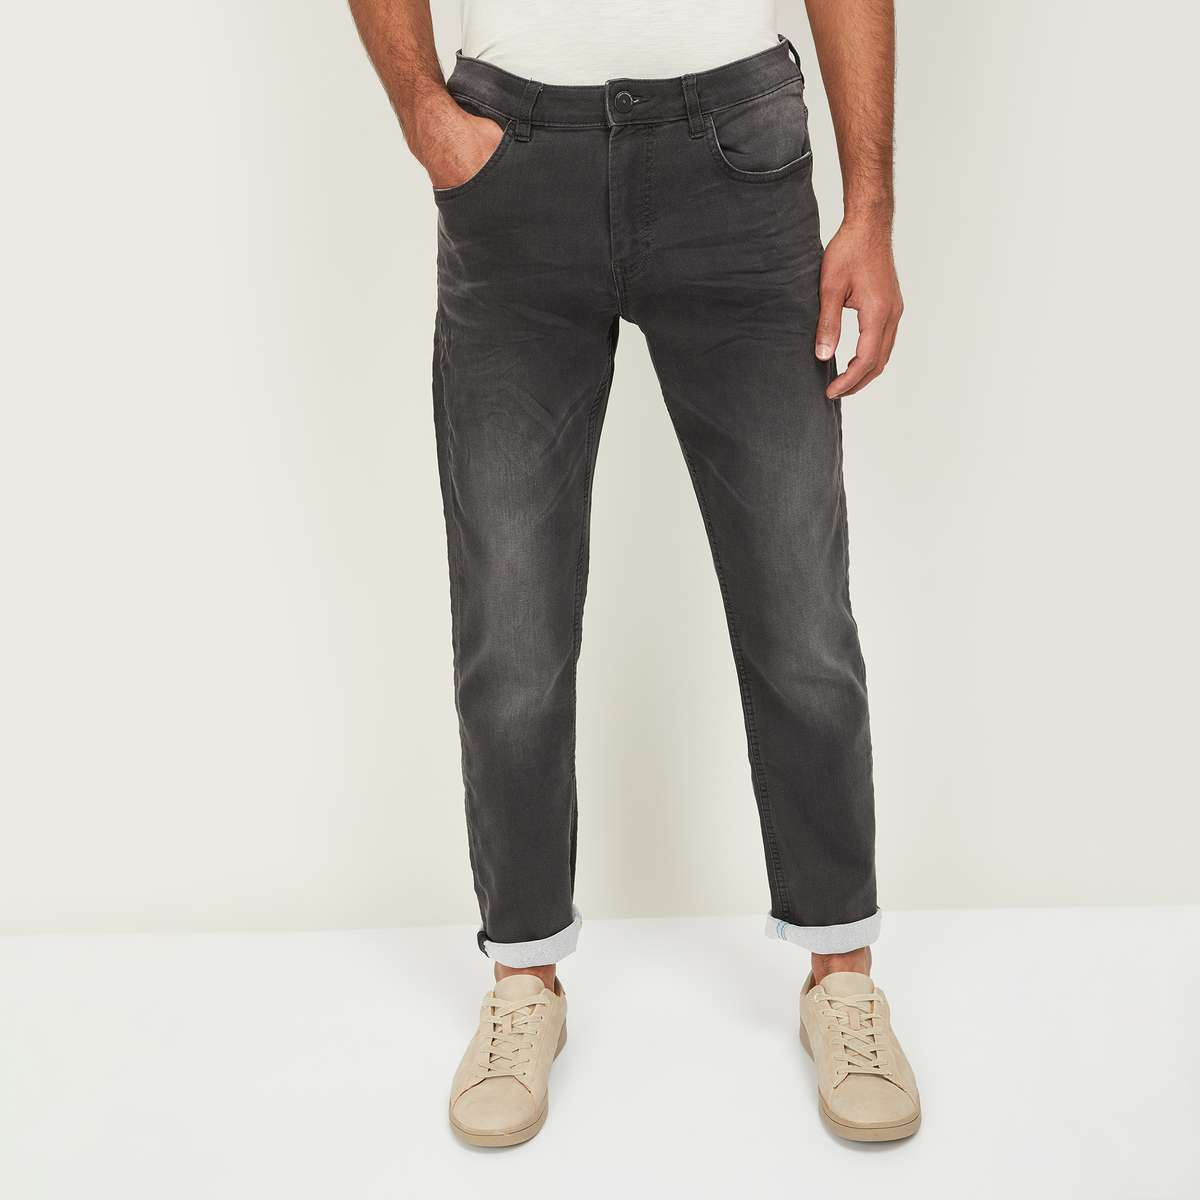 FORCA Men Dark Washed Slim Tapered Jeans